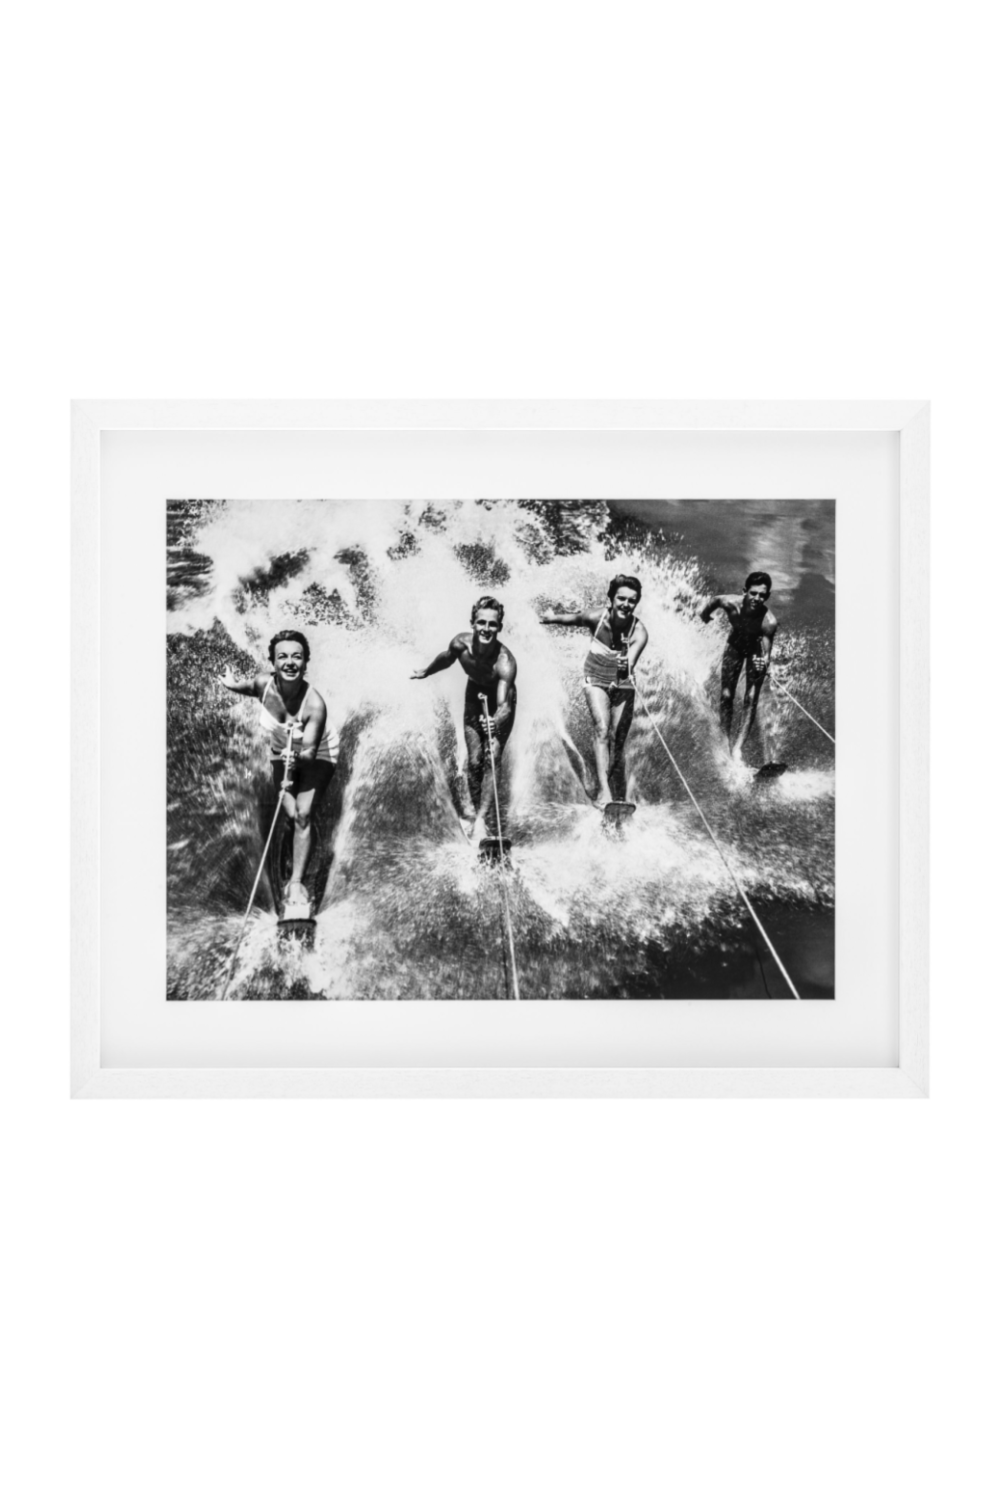 Water Ski Print | Eichholtz Ski Splash | Woodfurniture.com